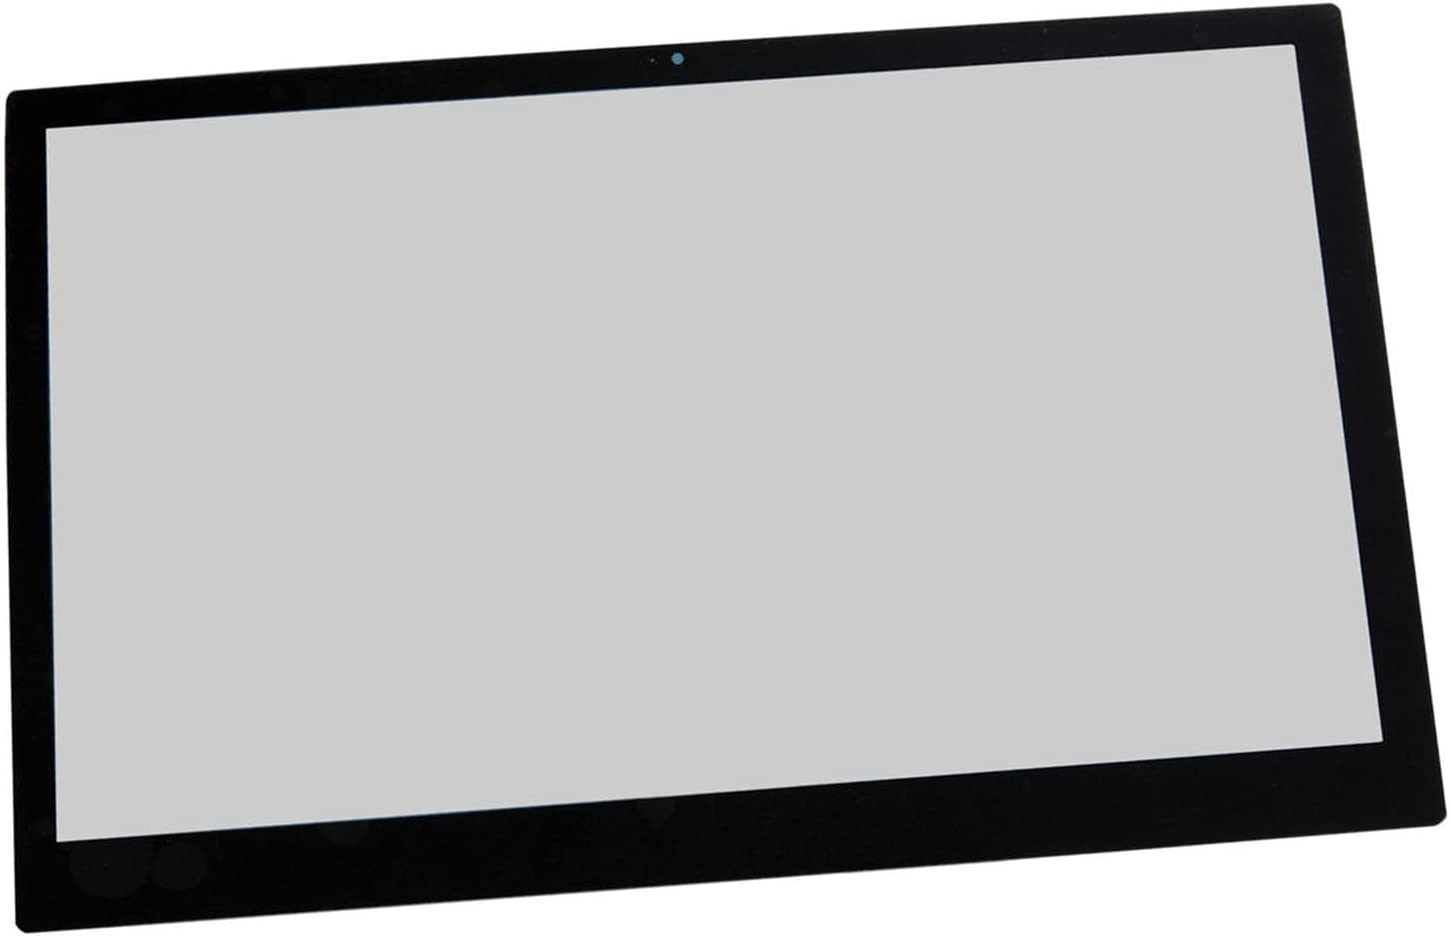 Kreplacement Touch Screen Digitizer Sensor Glass Lens Panel Touch Replacement Part for 15.6 inch Acer Aspire V5-571P-6866 V5-571P-6657